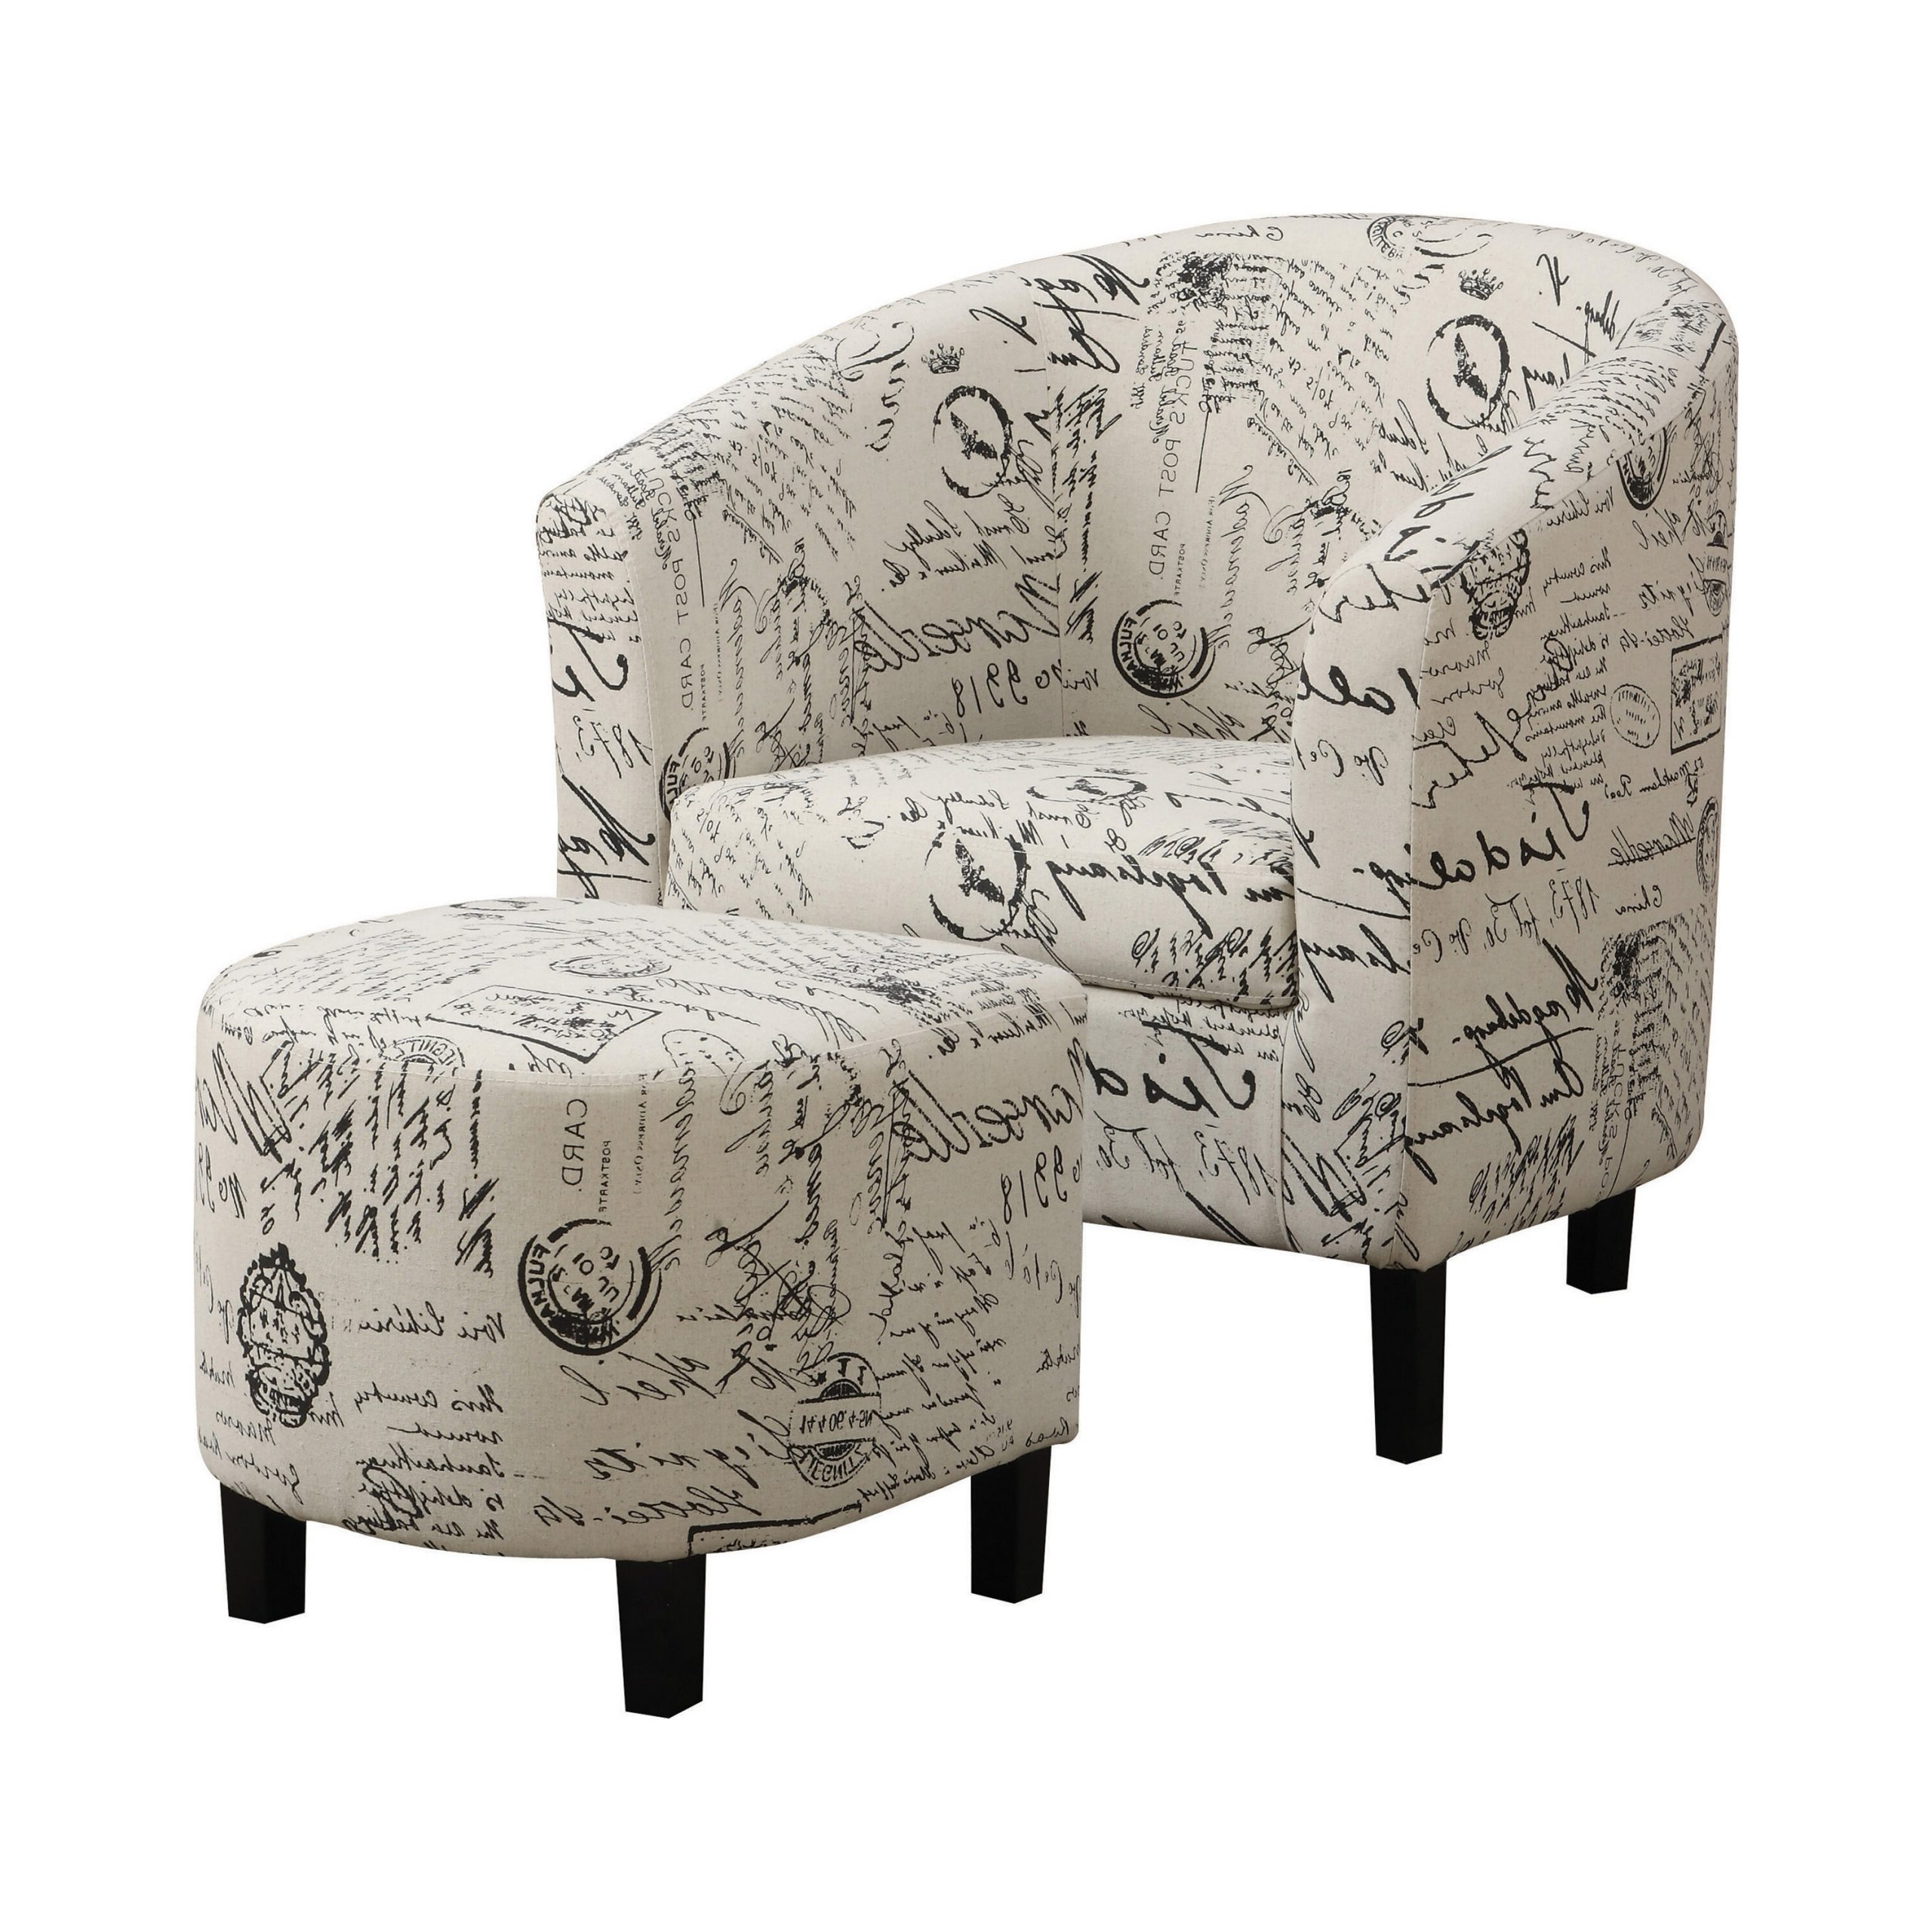 Preferred Riverside Drive Barrel Chair And Ottoman Sets Intended For Goodale French Script Barrel Chair And Ottoman (View 8 of 20)